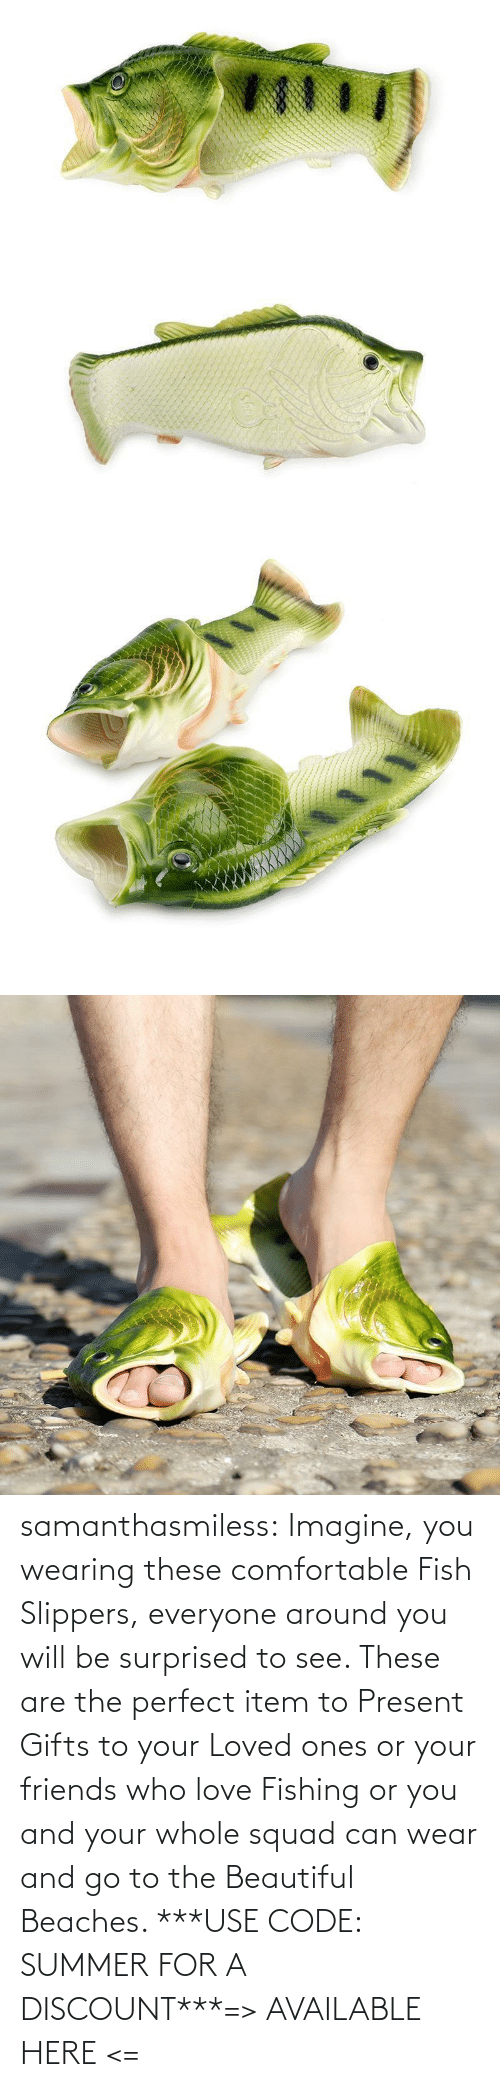 comfortable: samanthasmiless:  Imagine, you wearing these comfortable Fish Slippers, everyone around you will be surprised to see. These are the perfect item to Present Gifts to your Loved ones or your friends who love Fishing or you and your whole squad can wear and go to the Beautiful Beaches. ***USE CODE: SUMMER FOR A DISCOUNT***=> AVAILABLE HERE <=